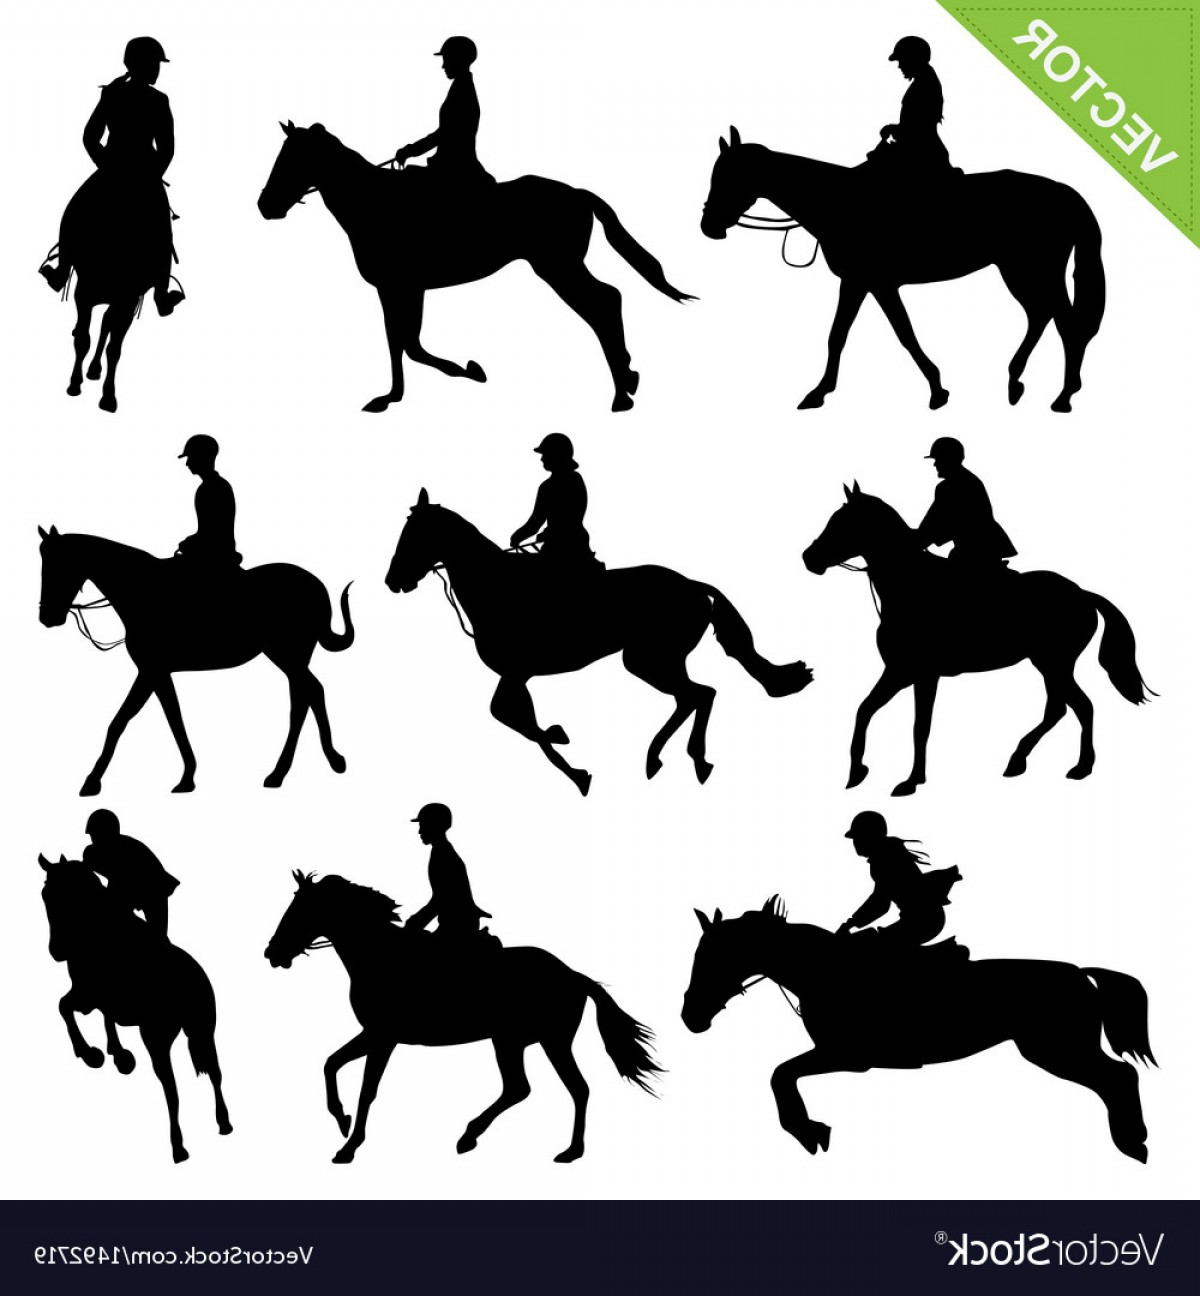 Horse And Rider Vector Art: Horse Riding Silhouettes Collections Vector